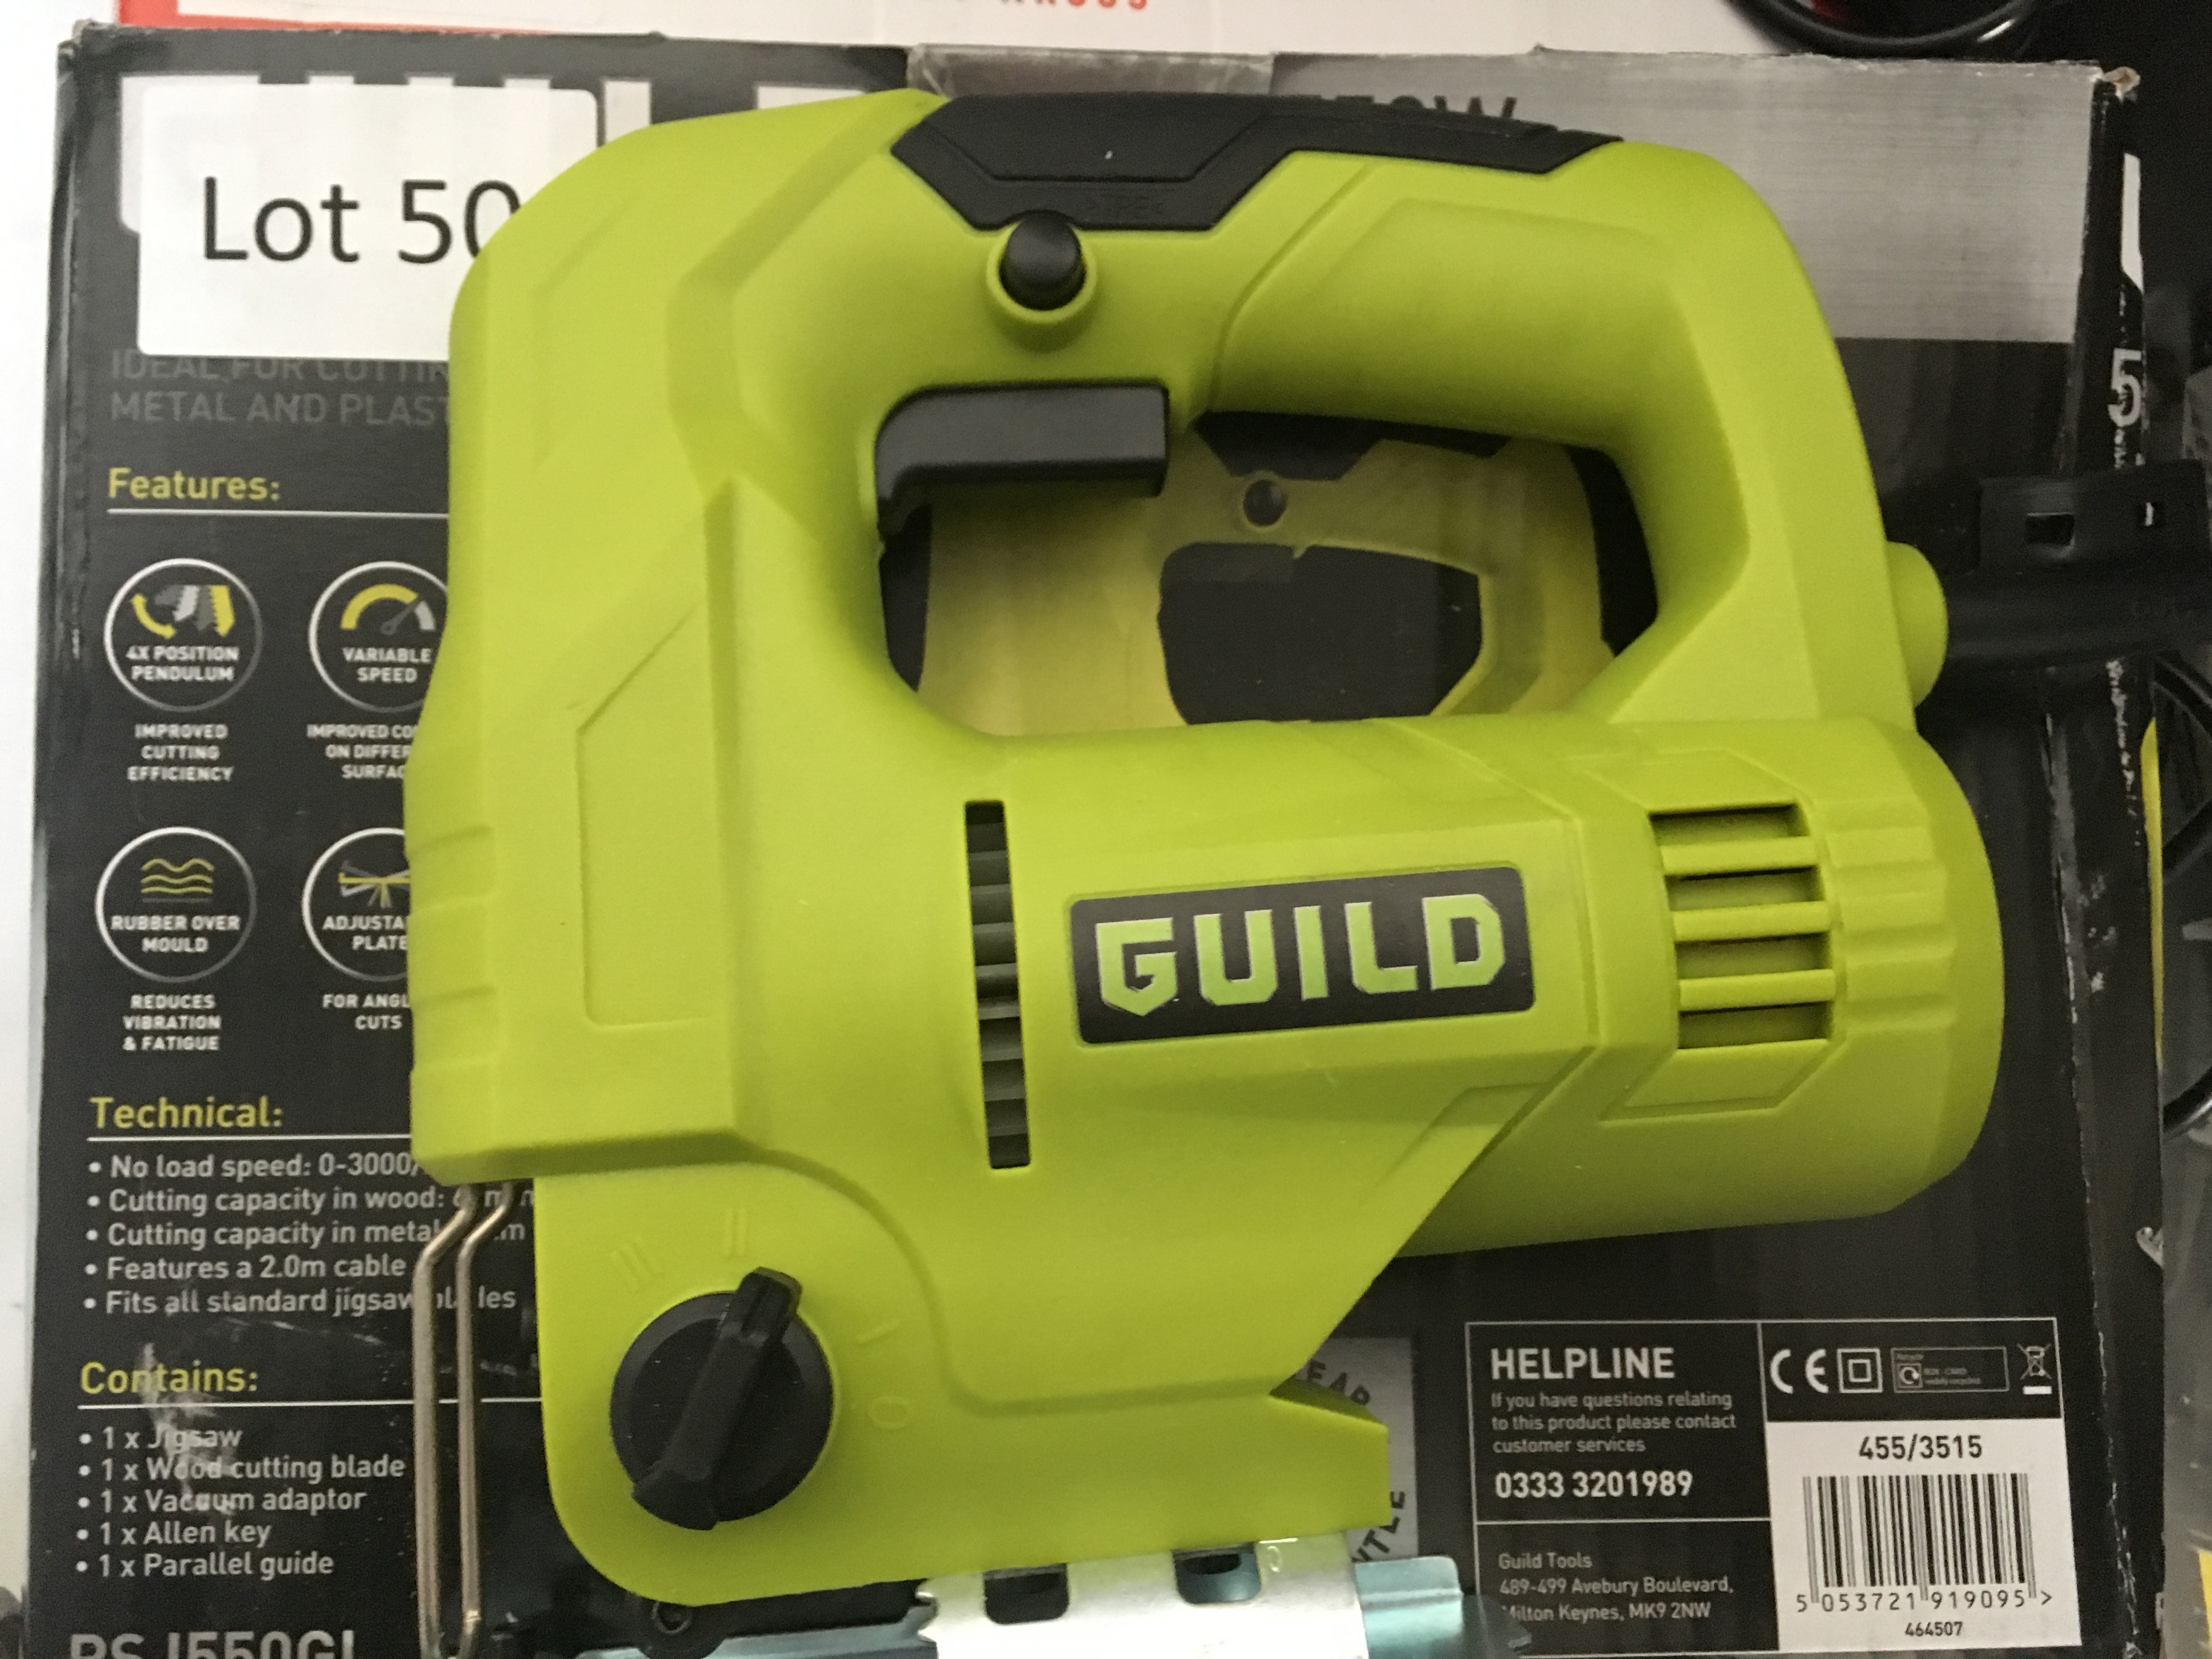 Lot 50 - Guild 550W jigsaw. Working, bad packaging.